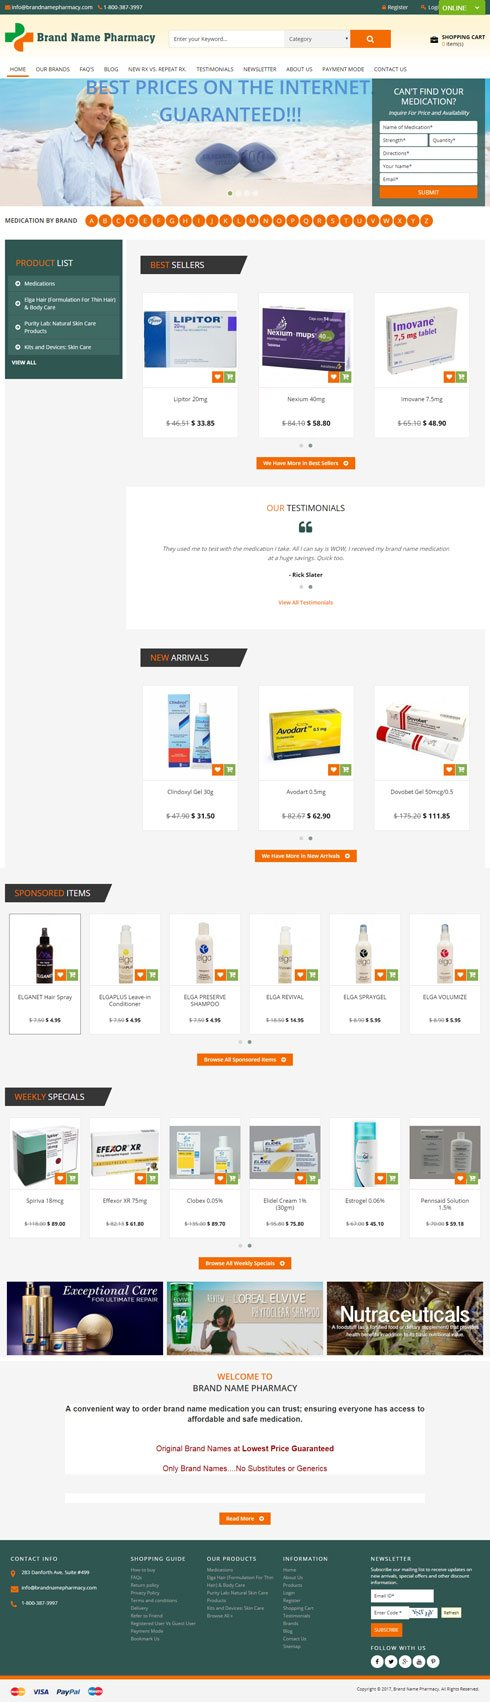 Brand Name Pharmacy Canada Web Design